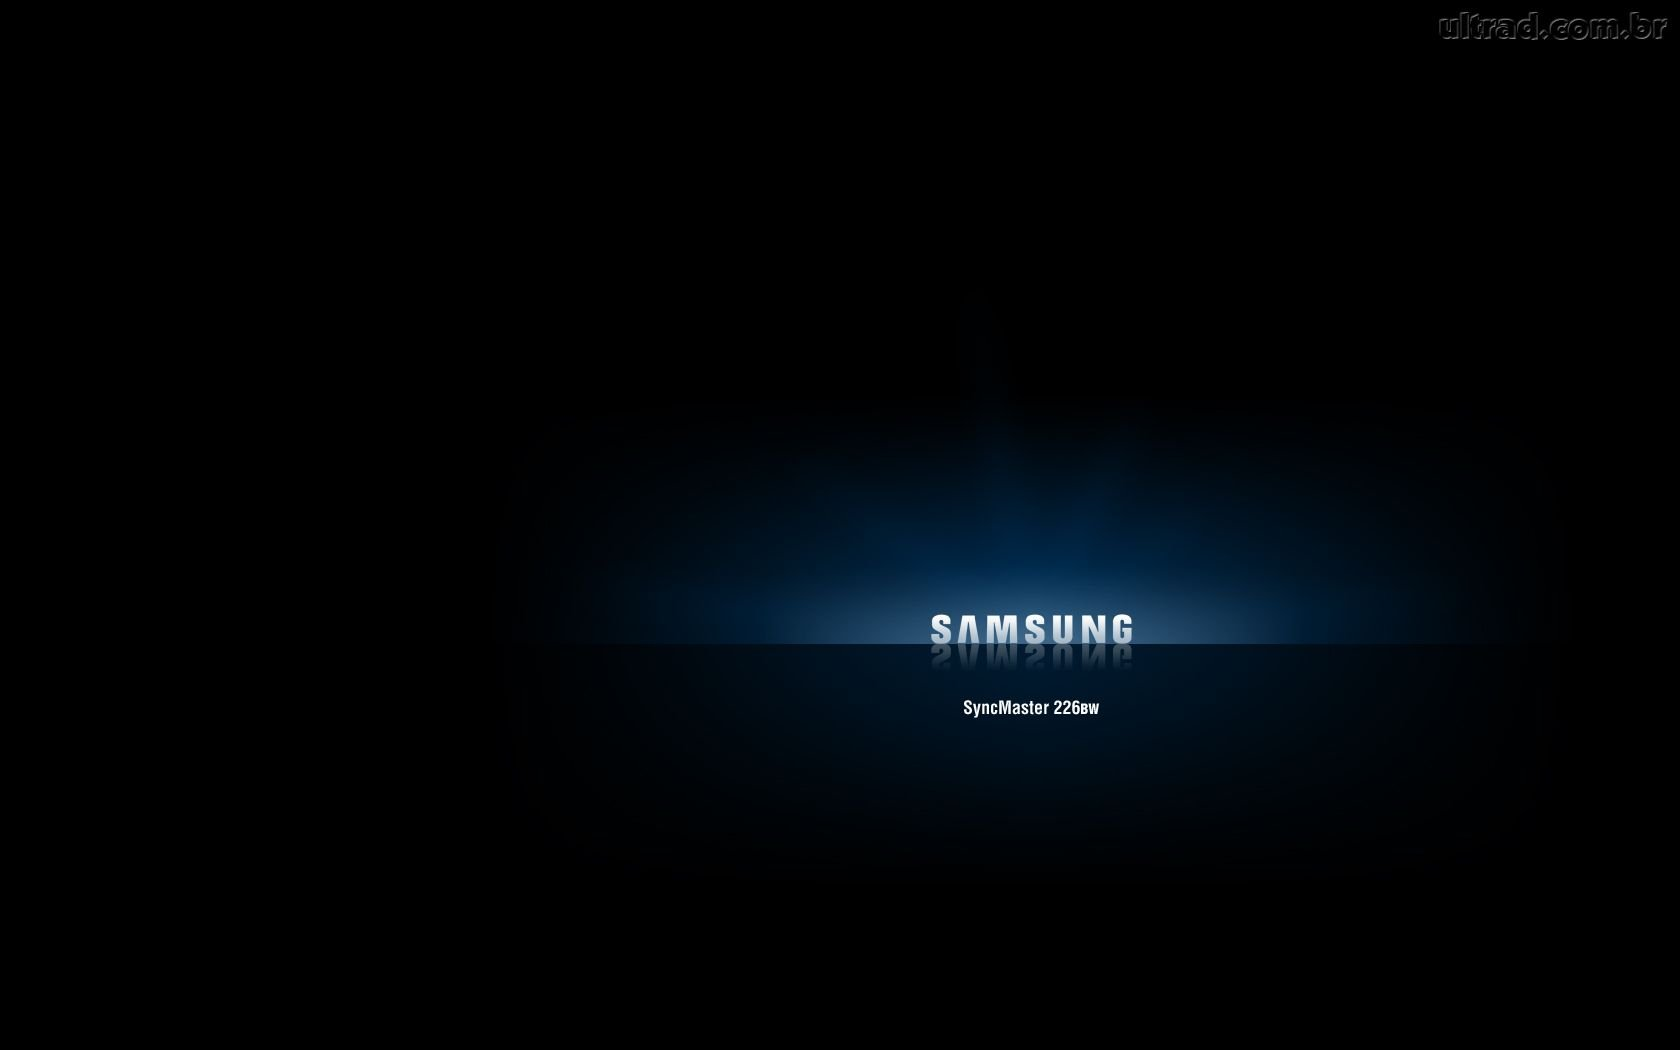 Samsung Laptop Wallpaper HD